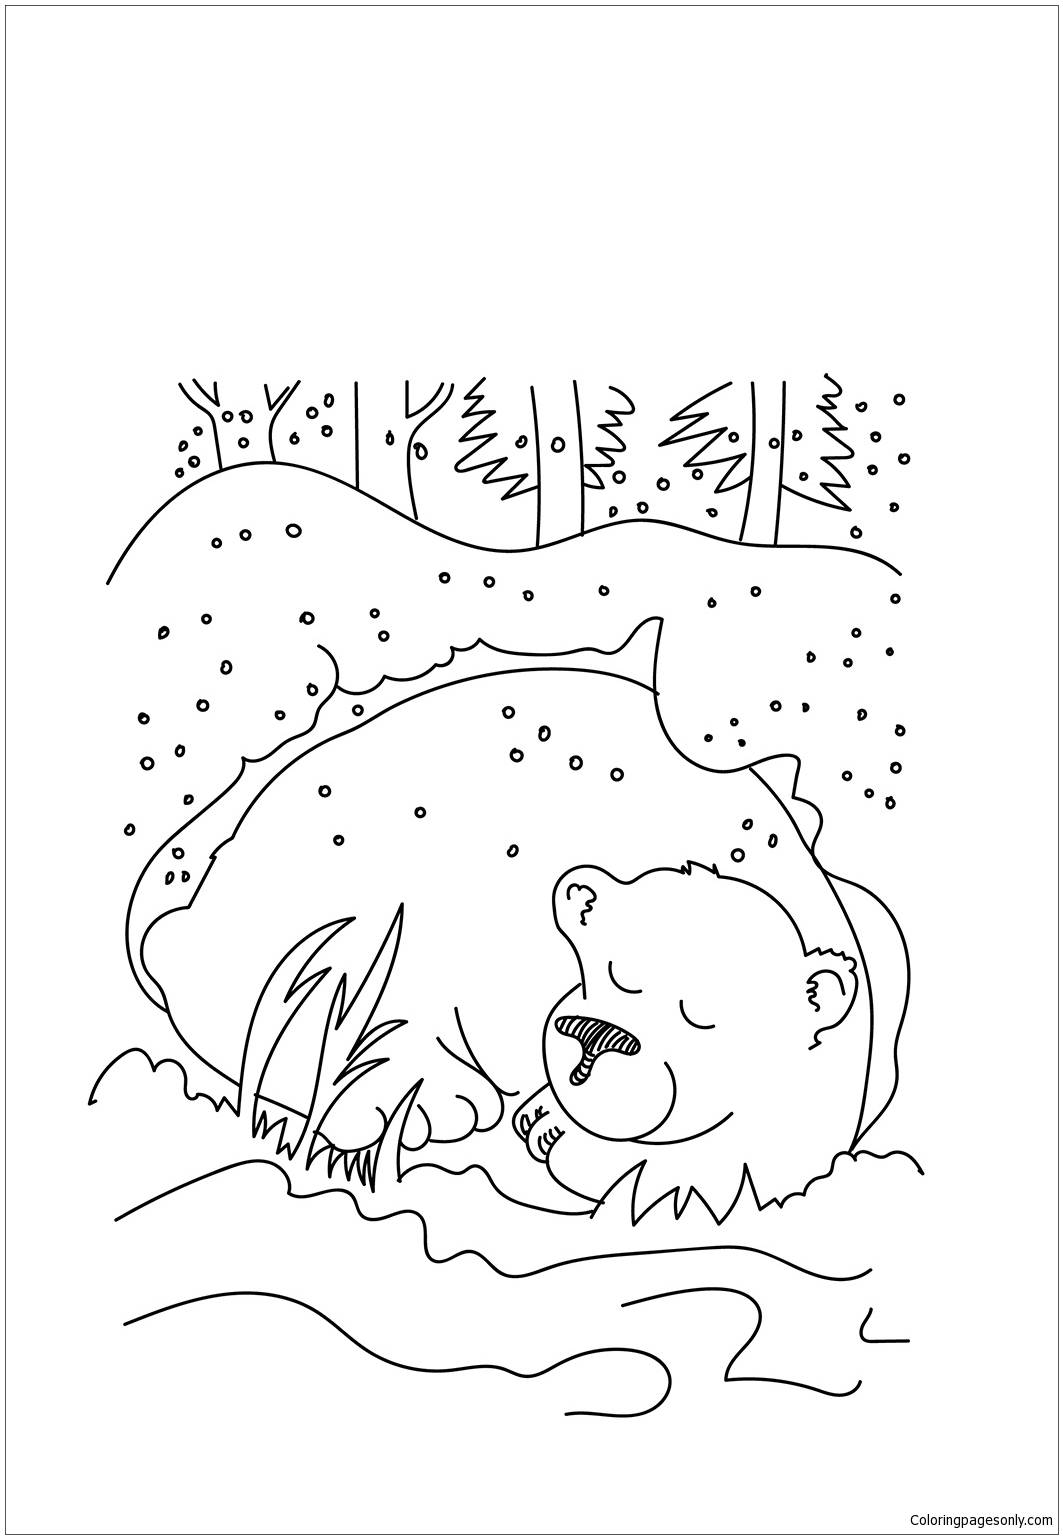 Cave clipart coloring page. Amazing hibernation pages bear